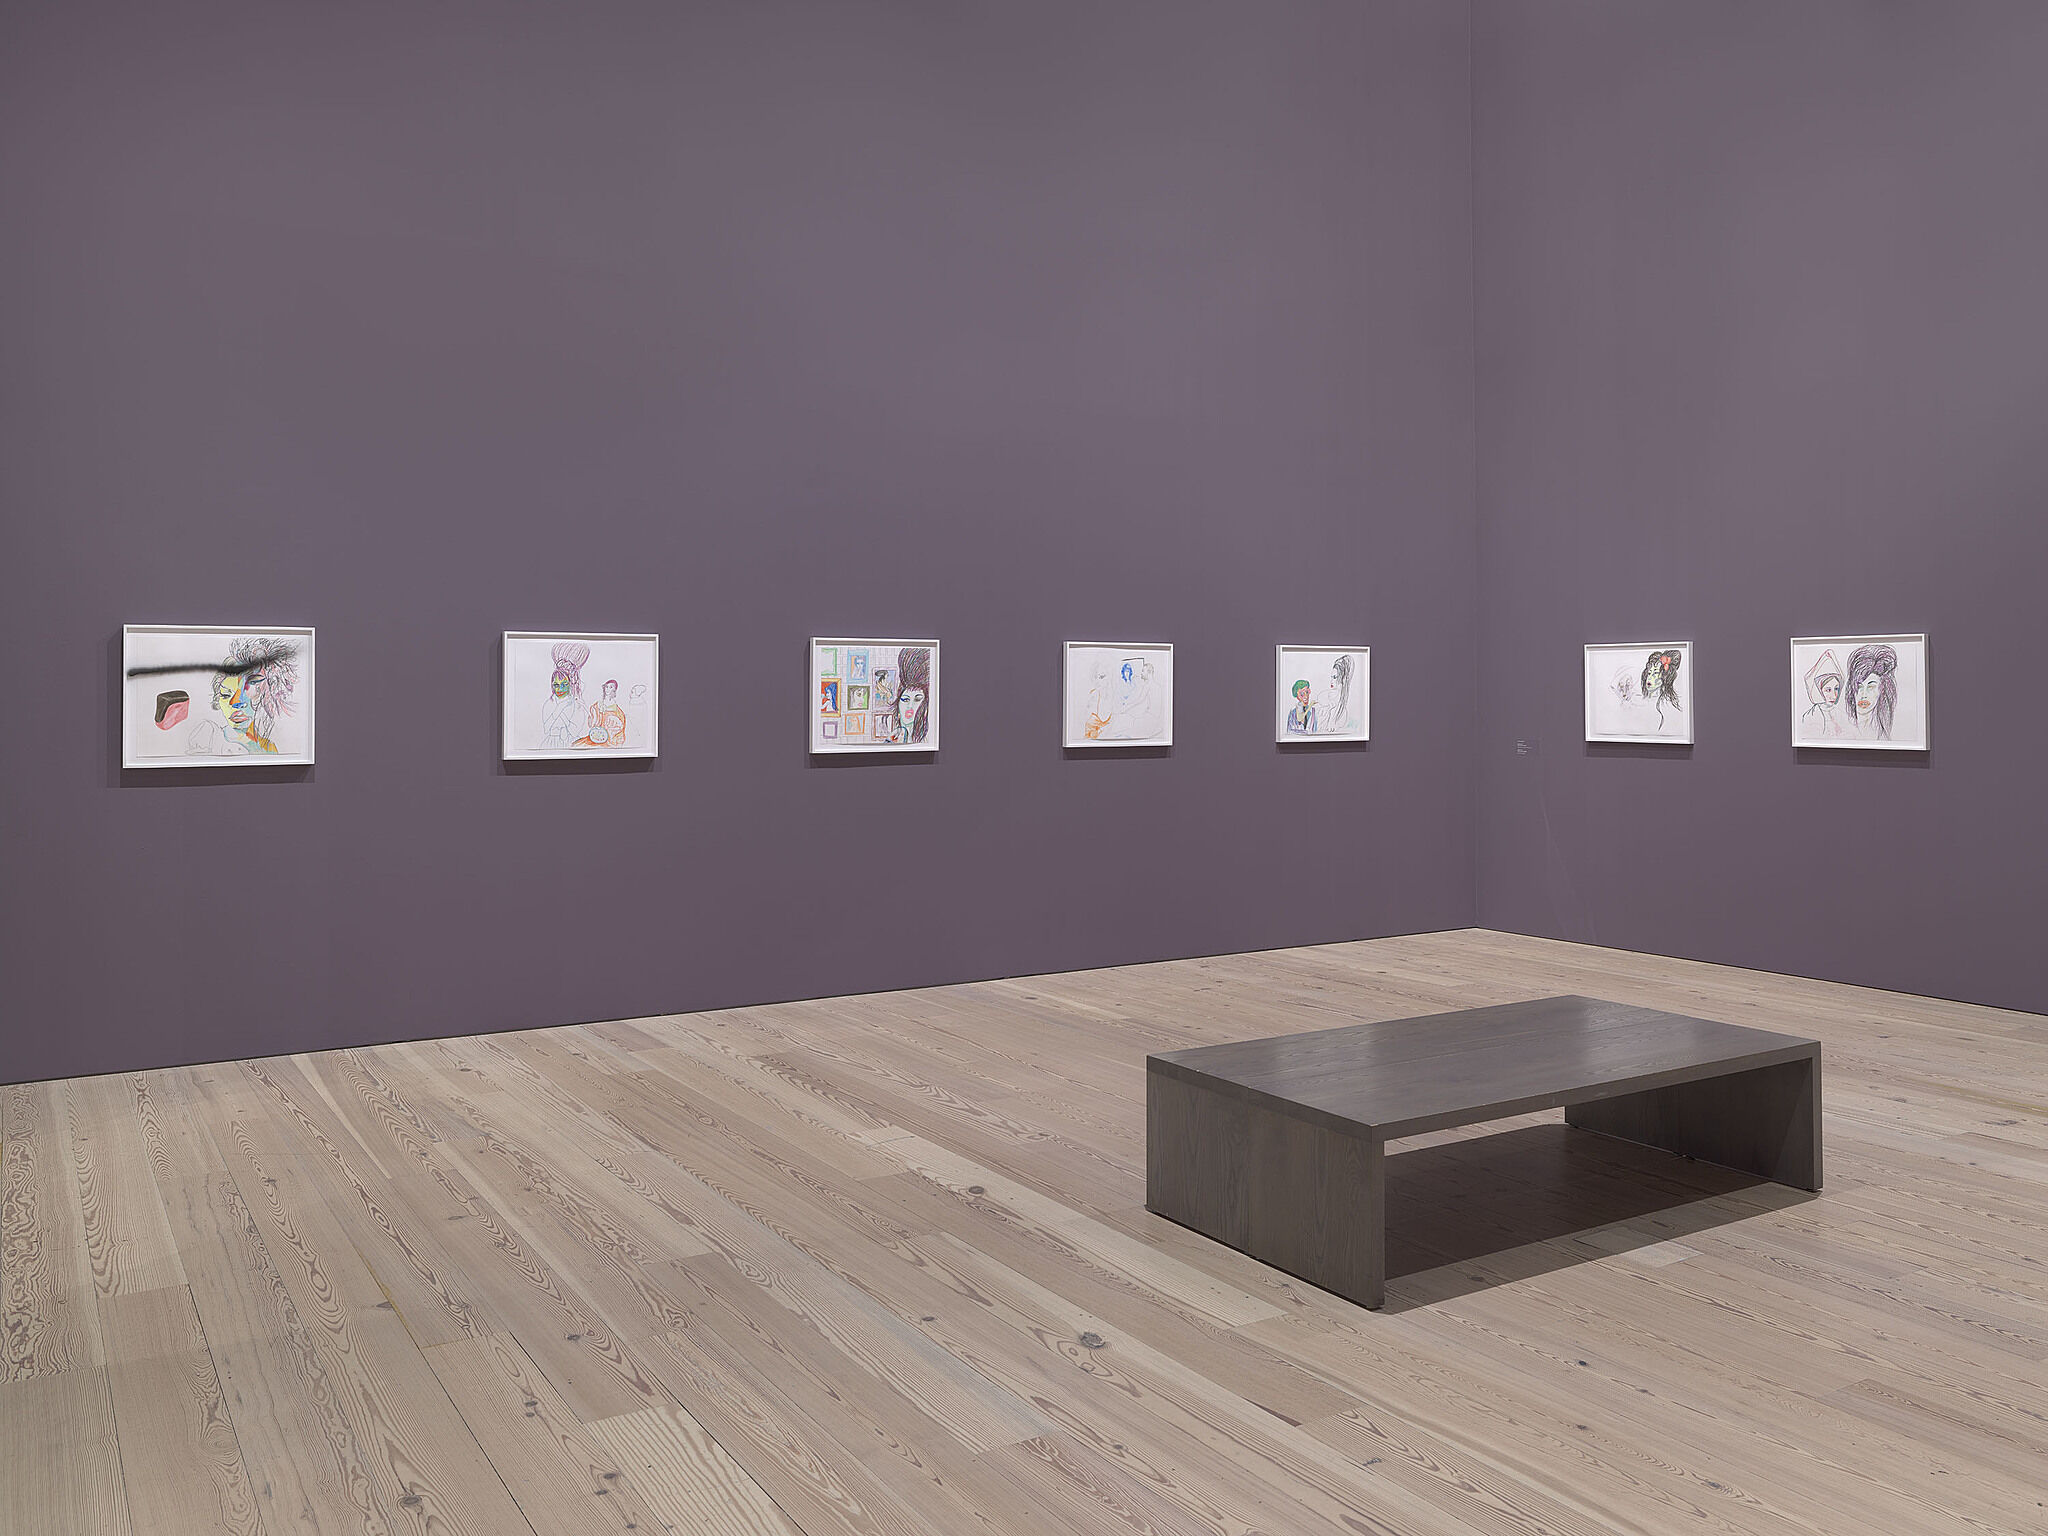 An image of the Whitney galleries with various artworks on the wall.